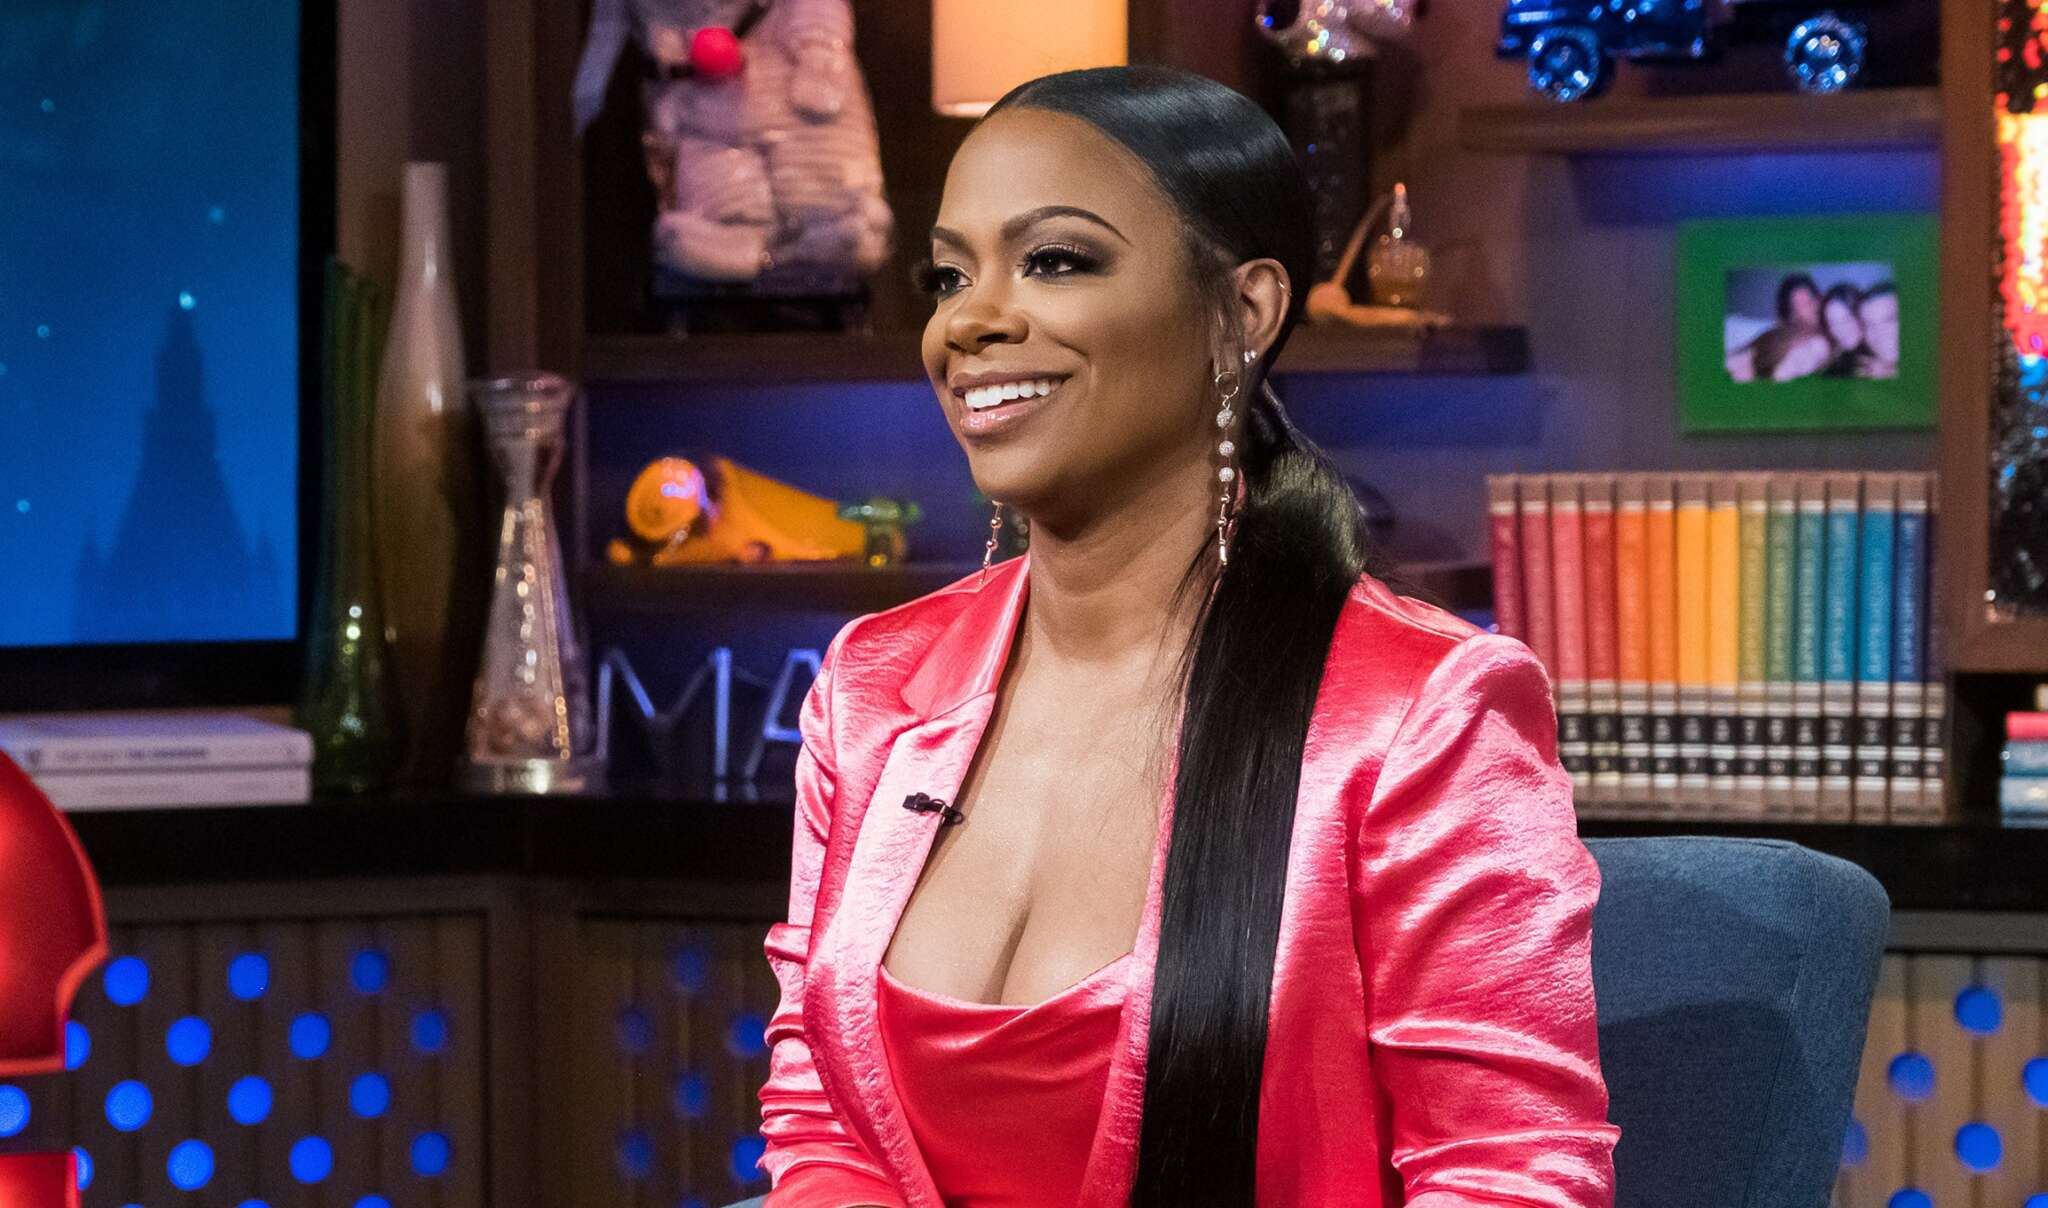 kandi-burruss-wishes-kirk-frost-a-happy-birthday-check-out-the-photos-from-his-anniversary